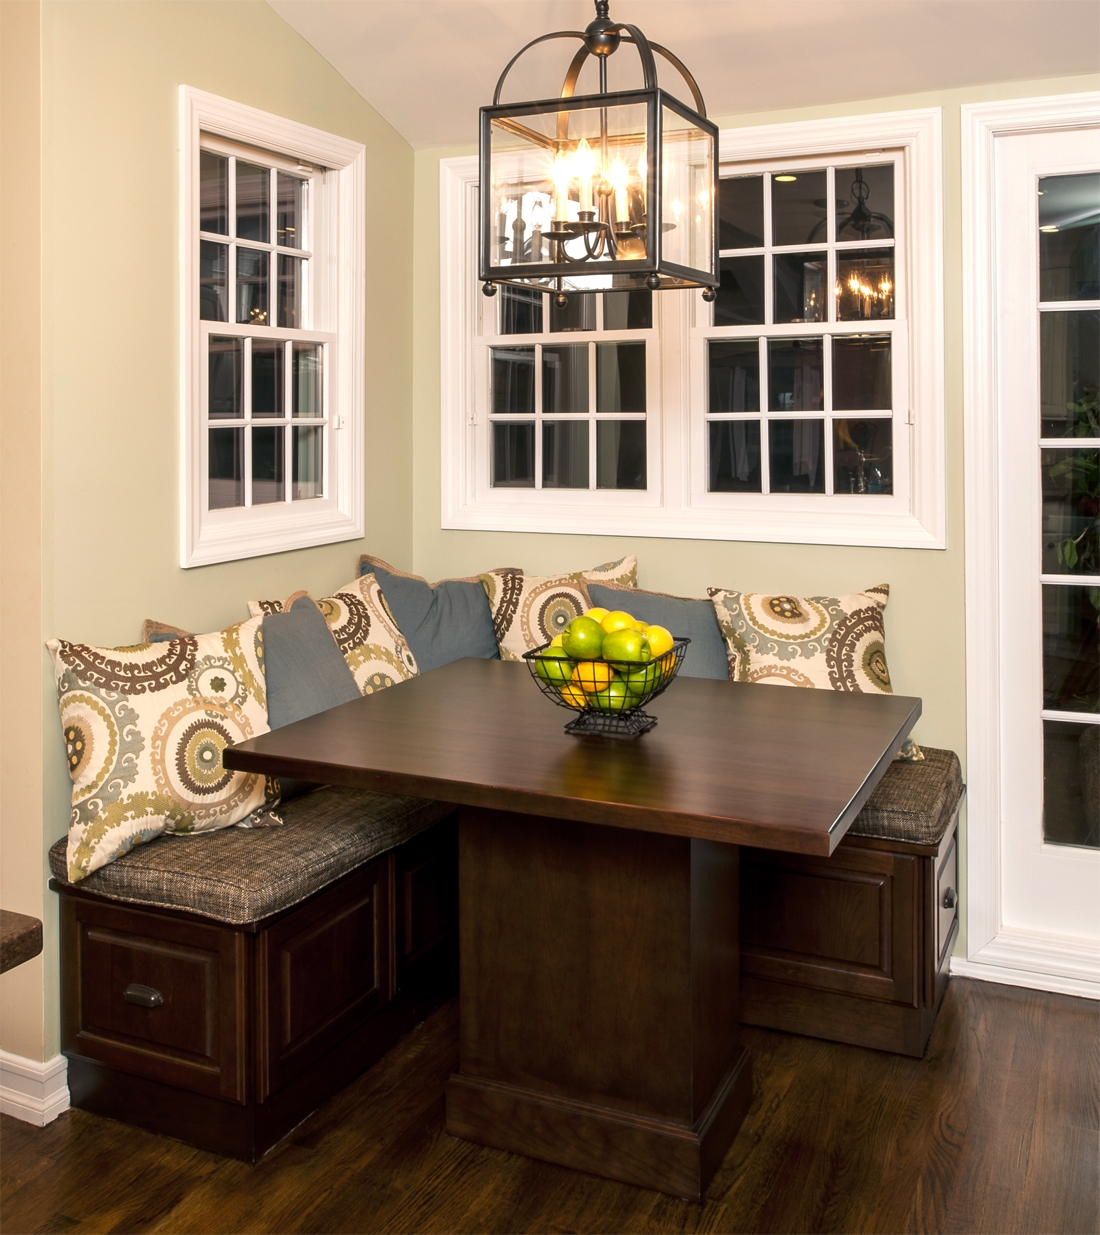 Kitchen Booth Seating Ideas Home Design And Decor With Corner Seating Ideas (Image 13 of 15)